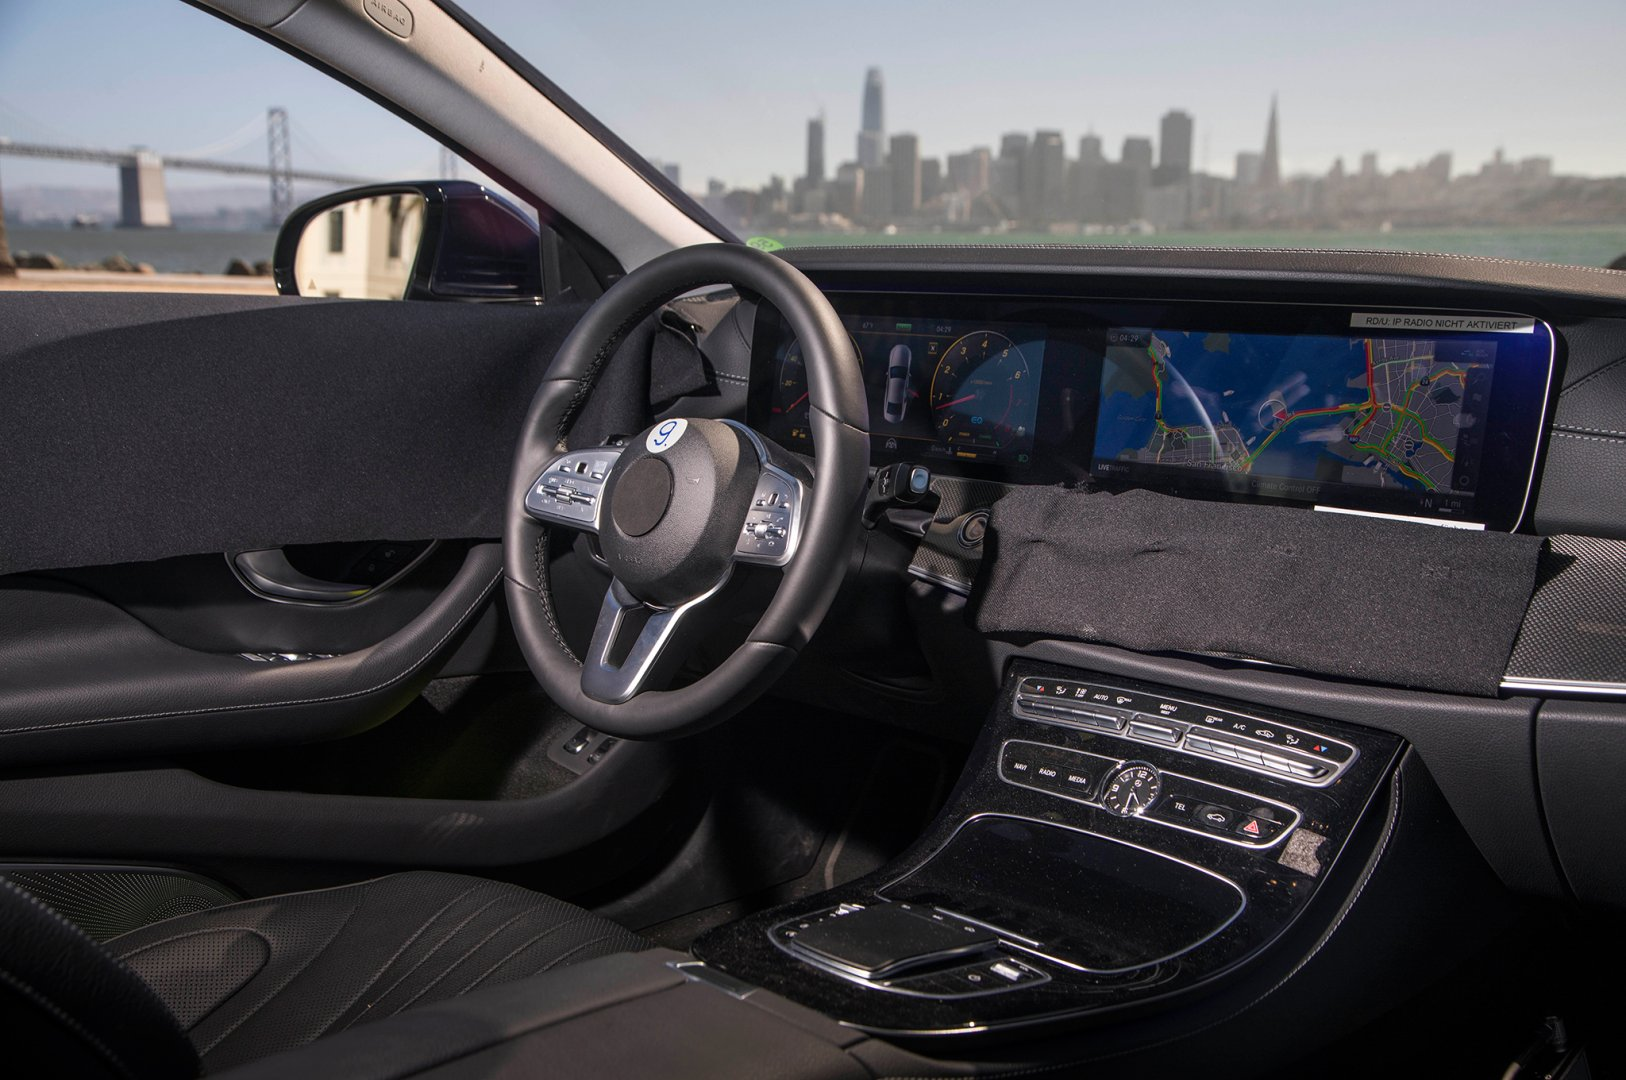 2019-Mercedes-Benz-CLS-Prototype-dashboard.jpg